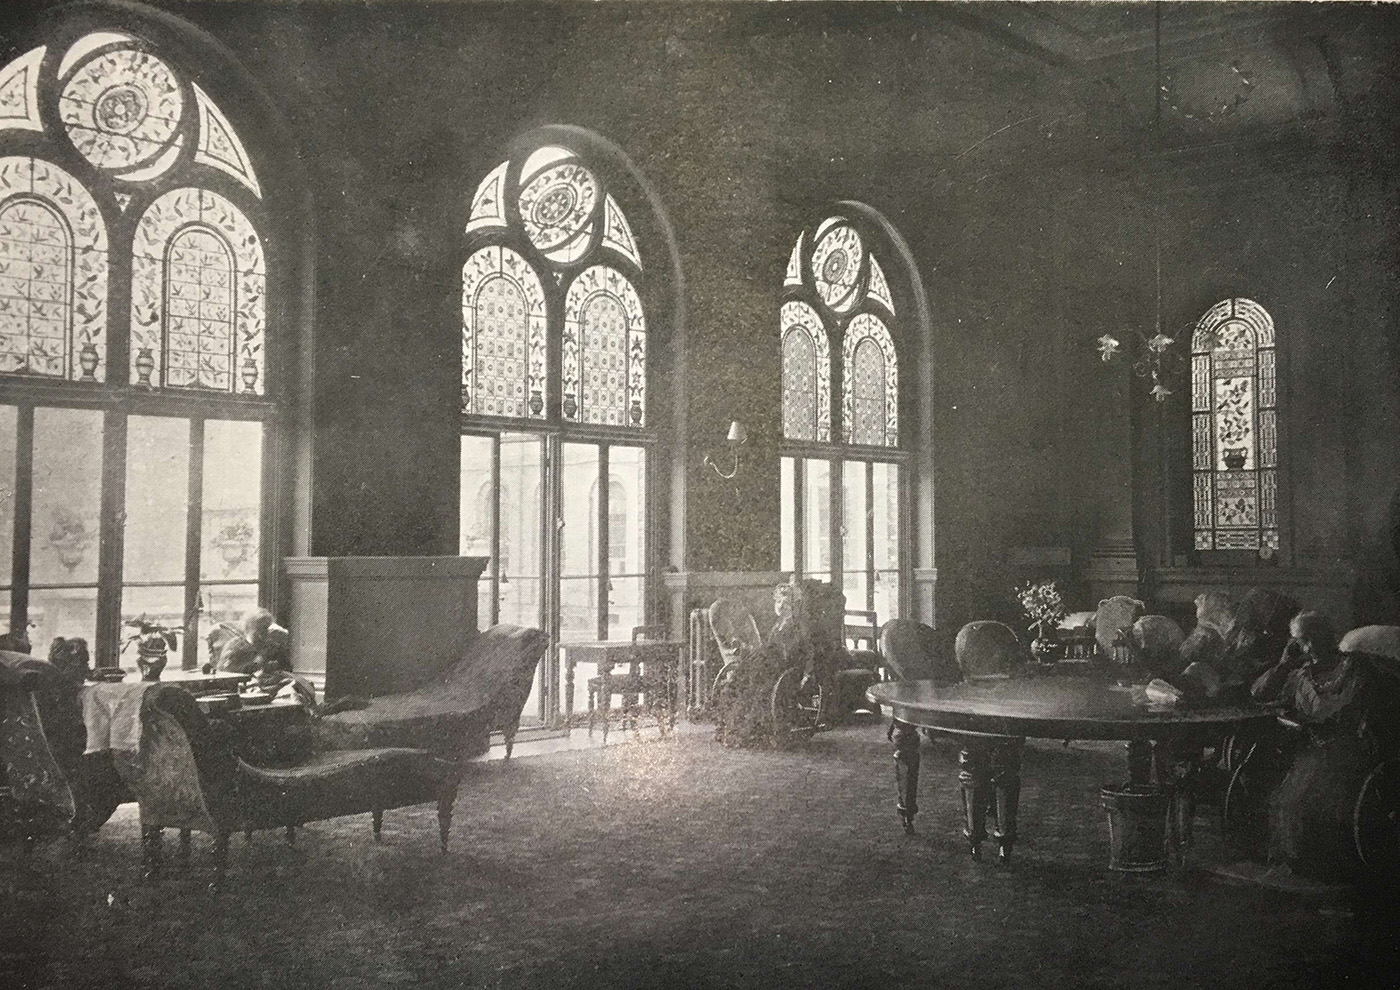 The Assembly Room with original stained glass at the RHN